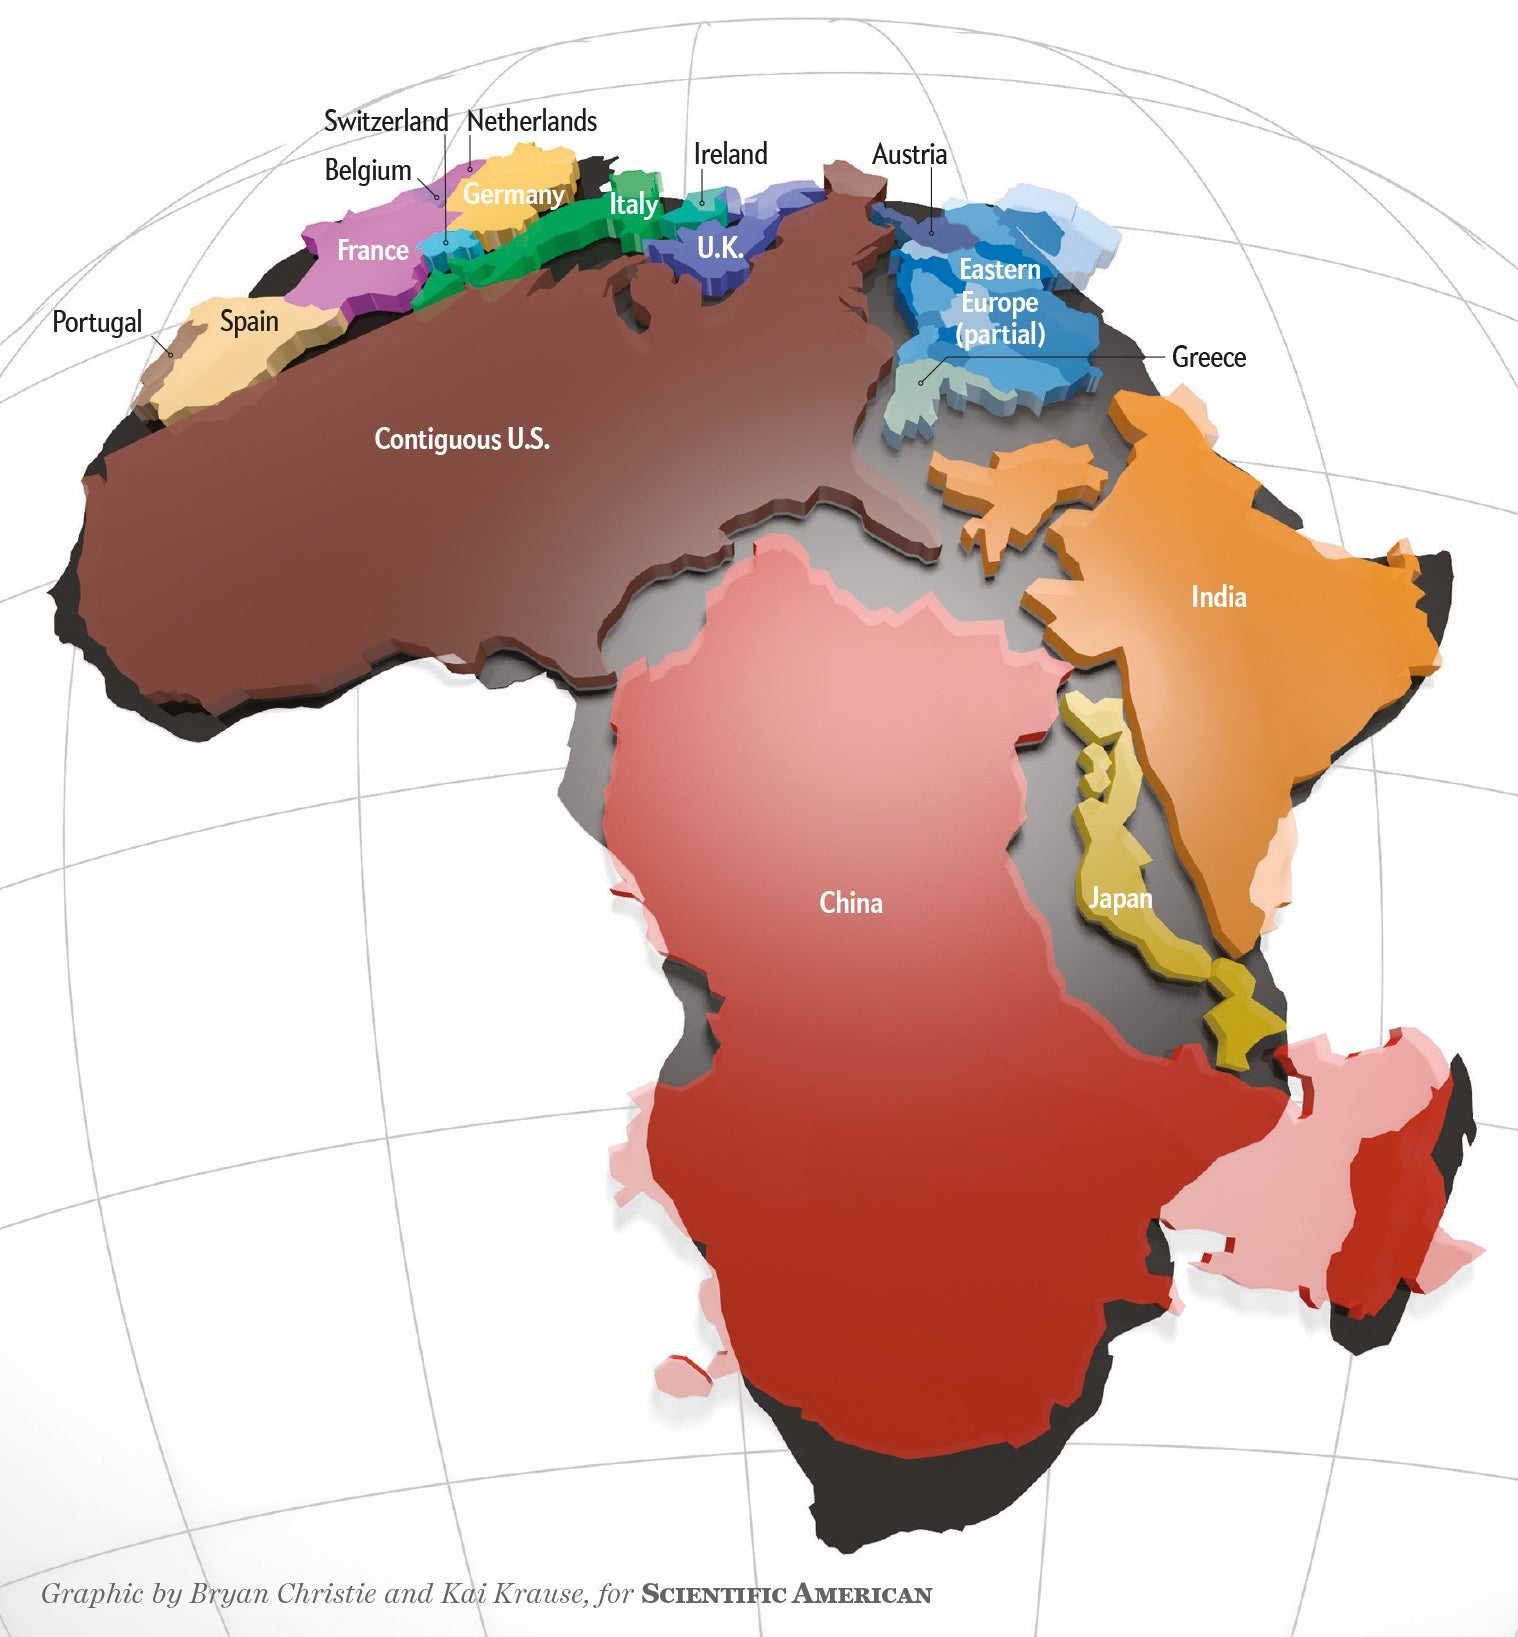 Africa Is Way Bigger Than You Think Scientific American Blog Network - Portugal map size